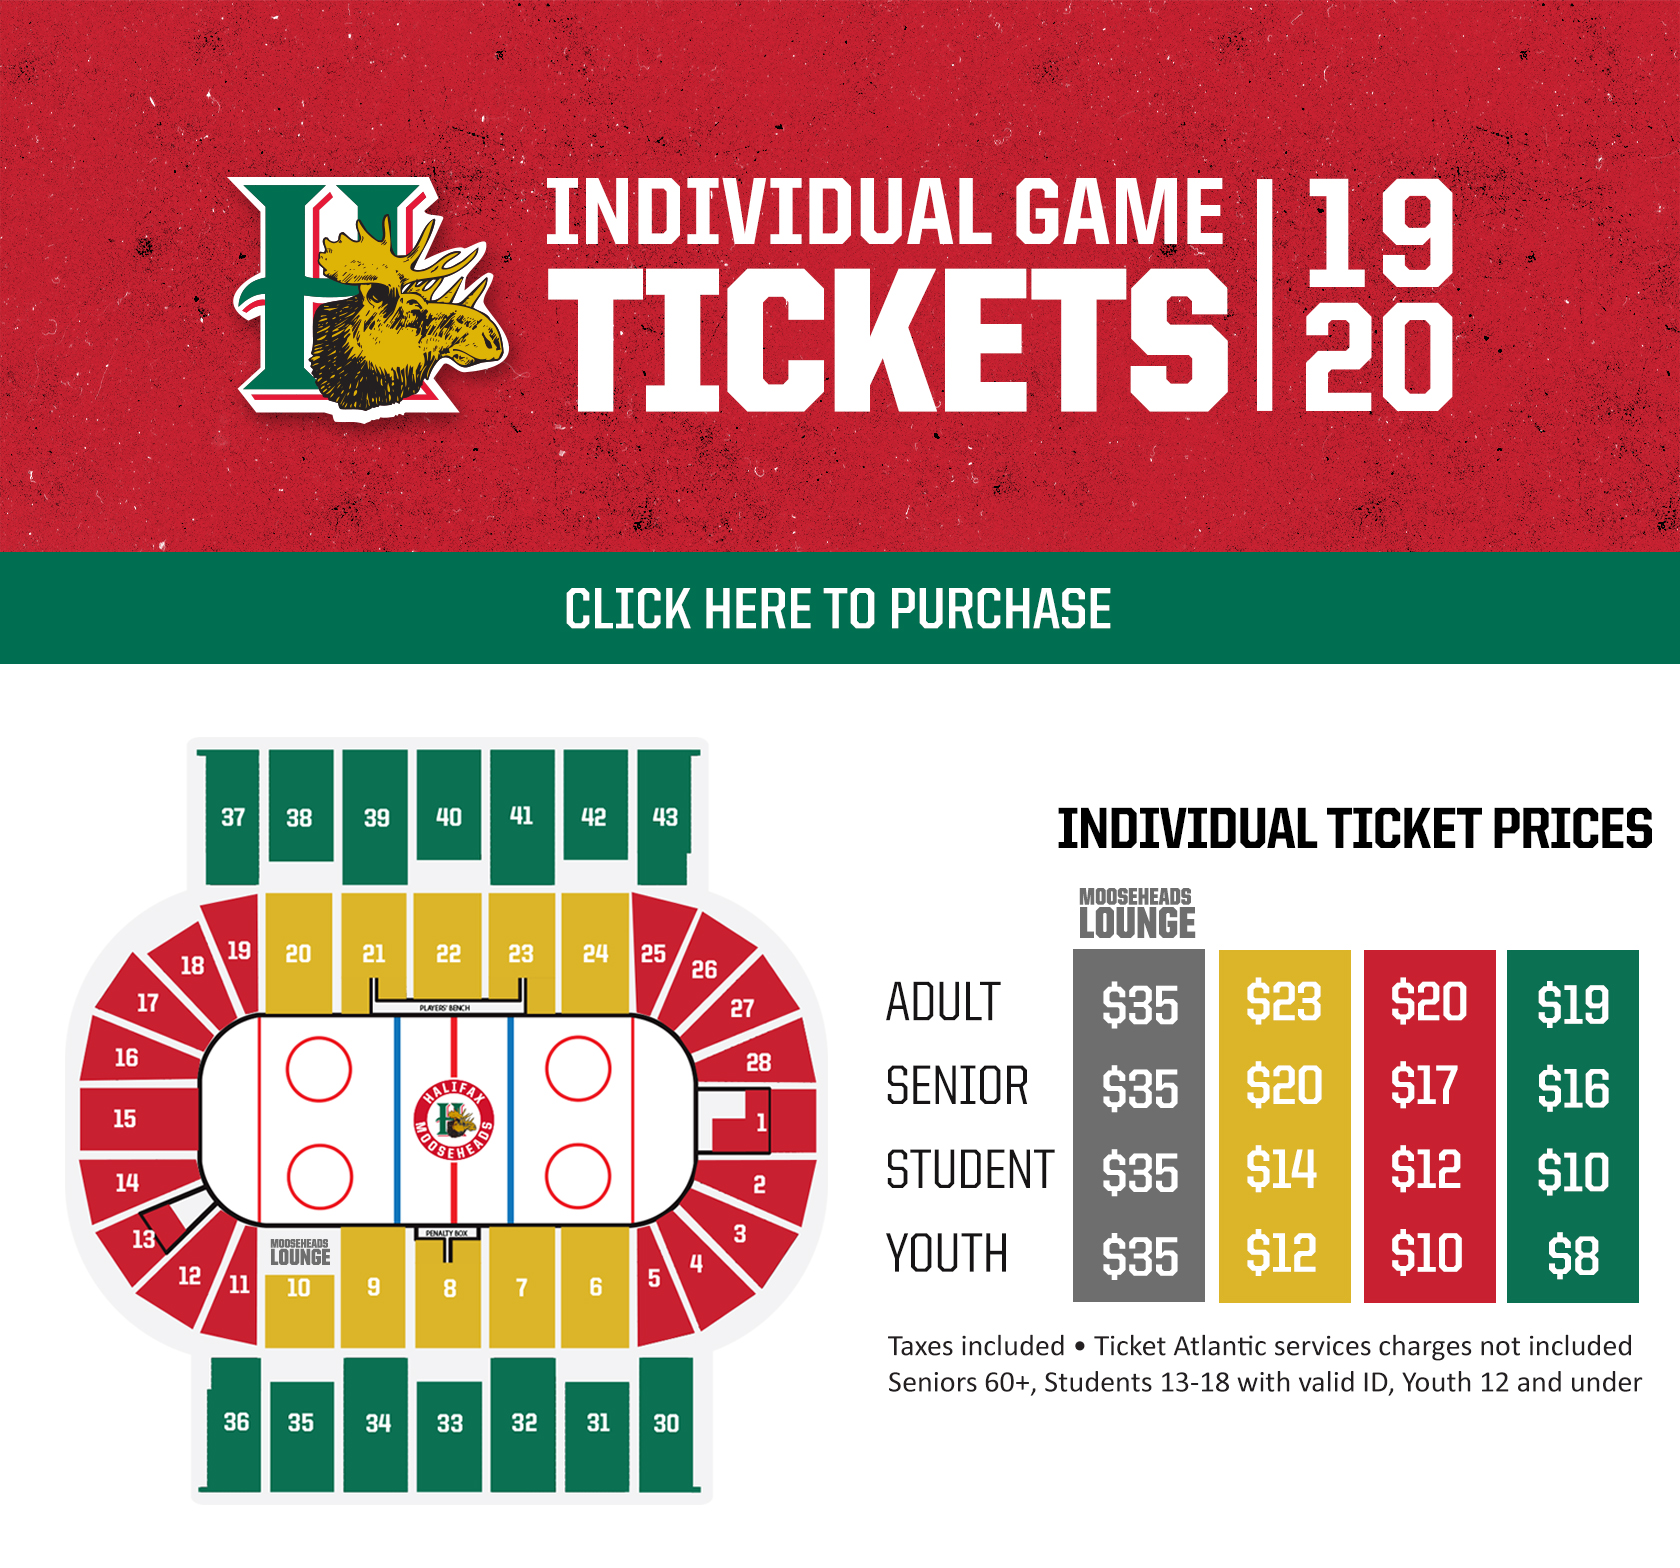 IndividualTickets-OnSale2